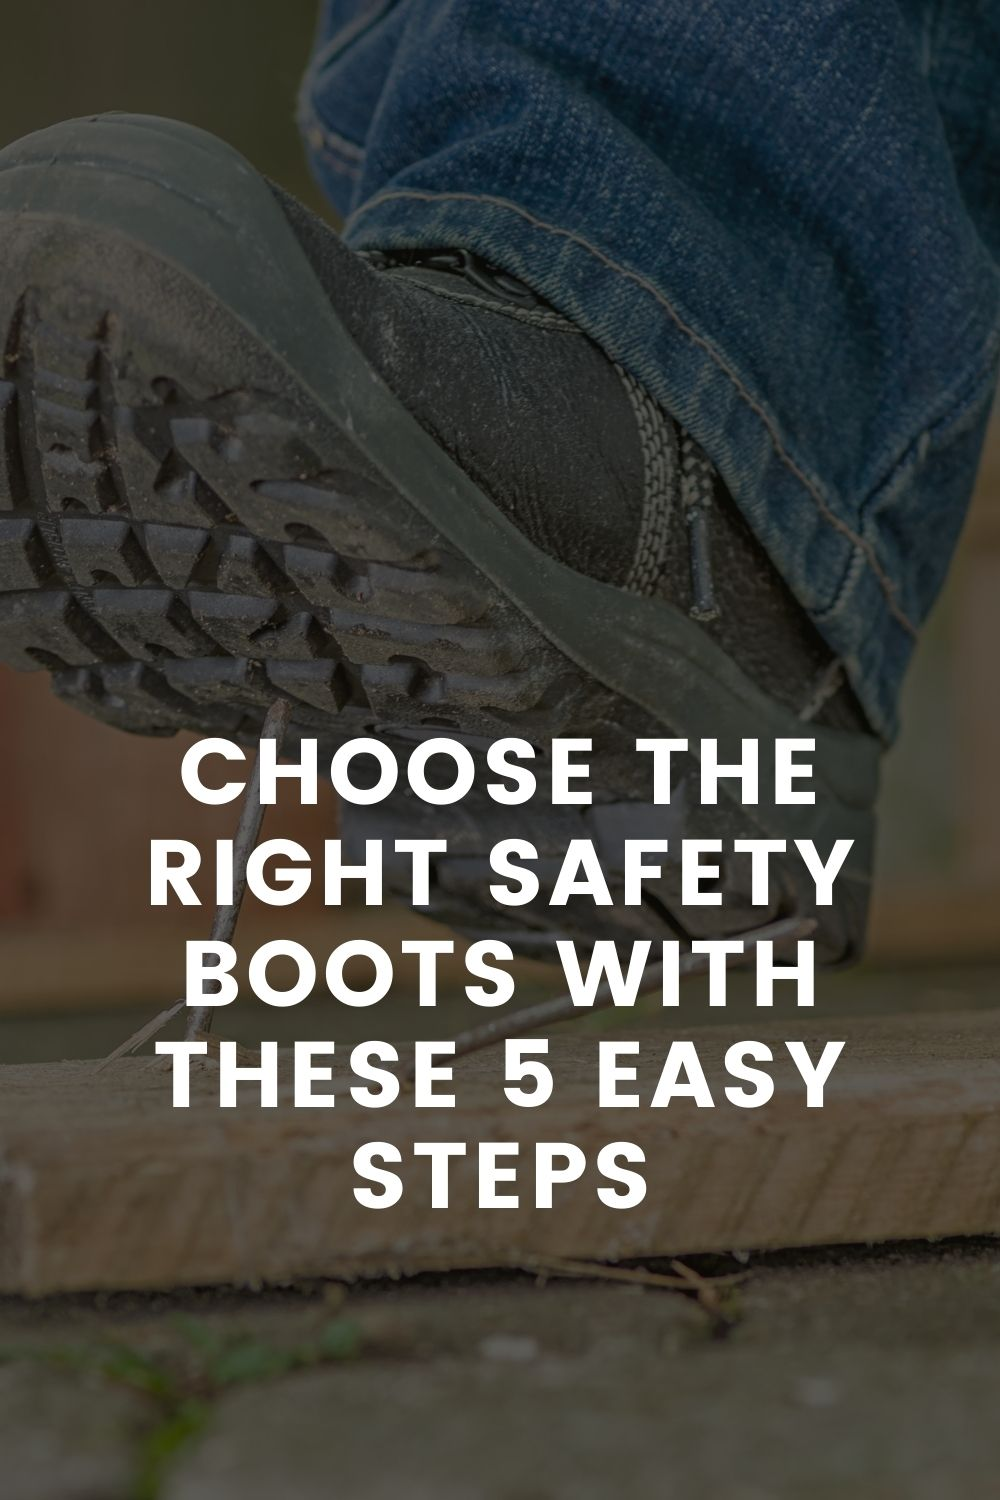 Choose the Right Safety Boots with These 5 Easy Steps